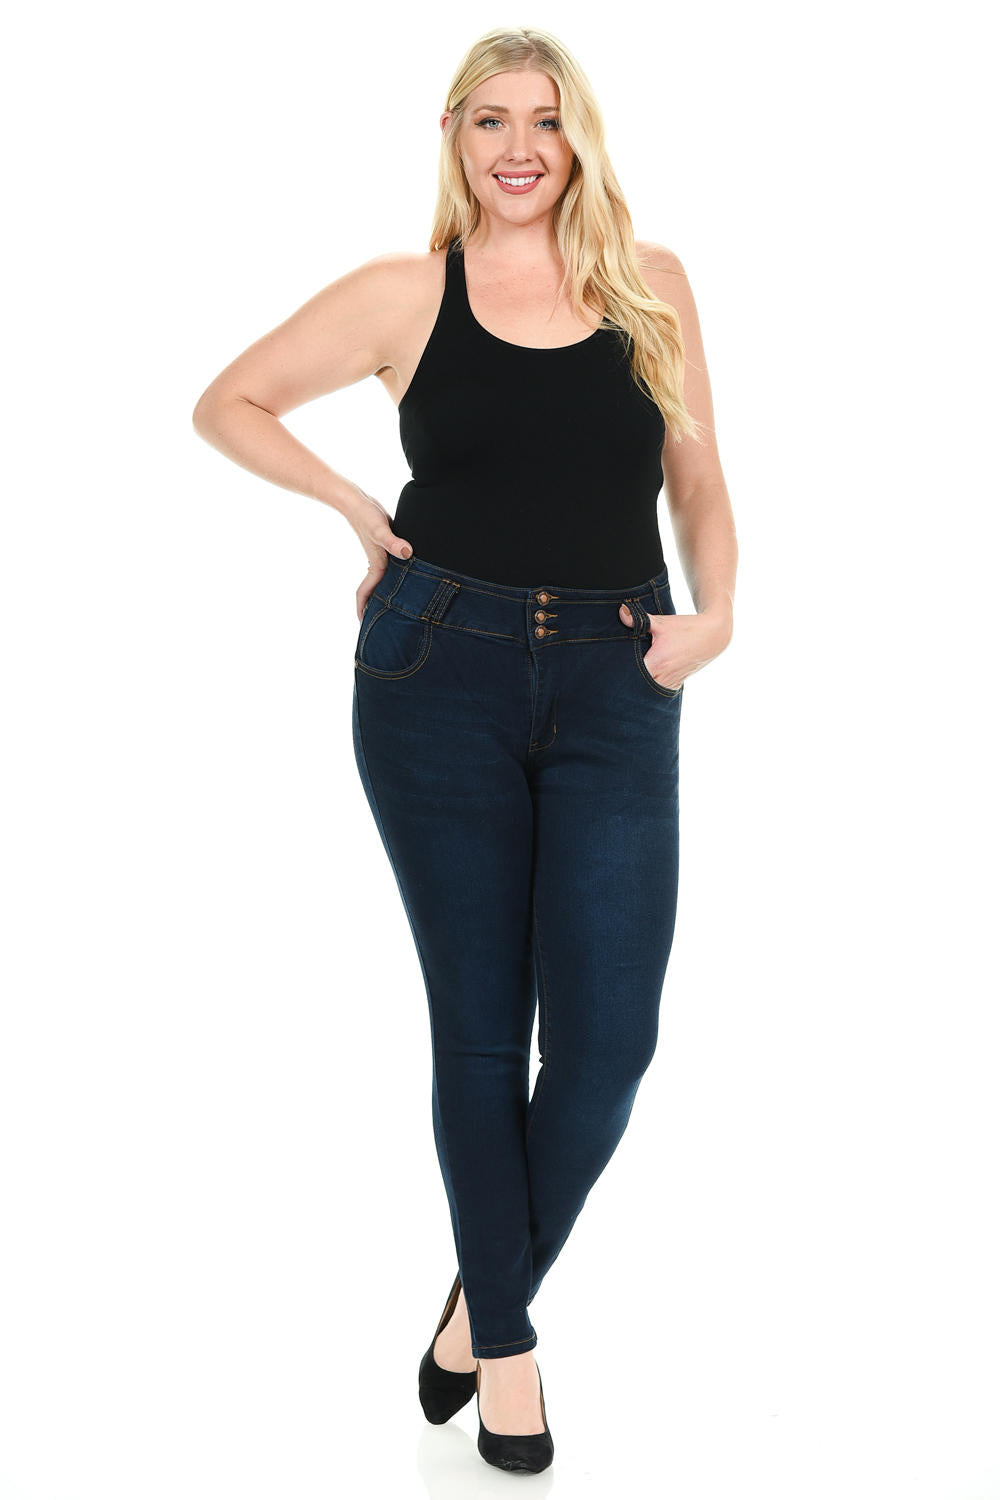 Pasion Women's Jeans - Plus Size - High Waist - Push Up - Skinny - Winter Haven Co